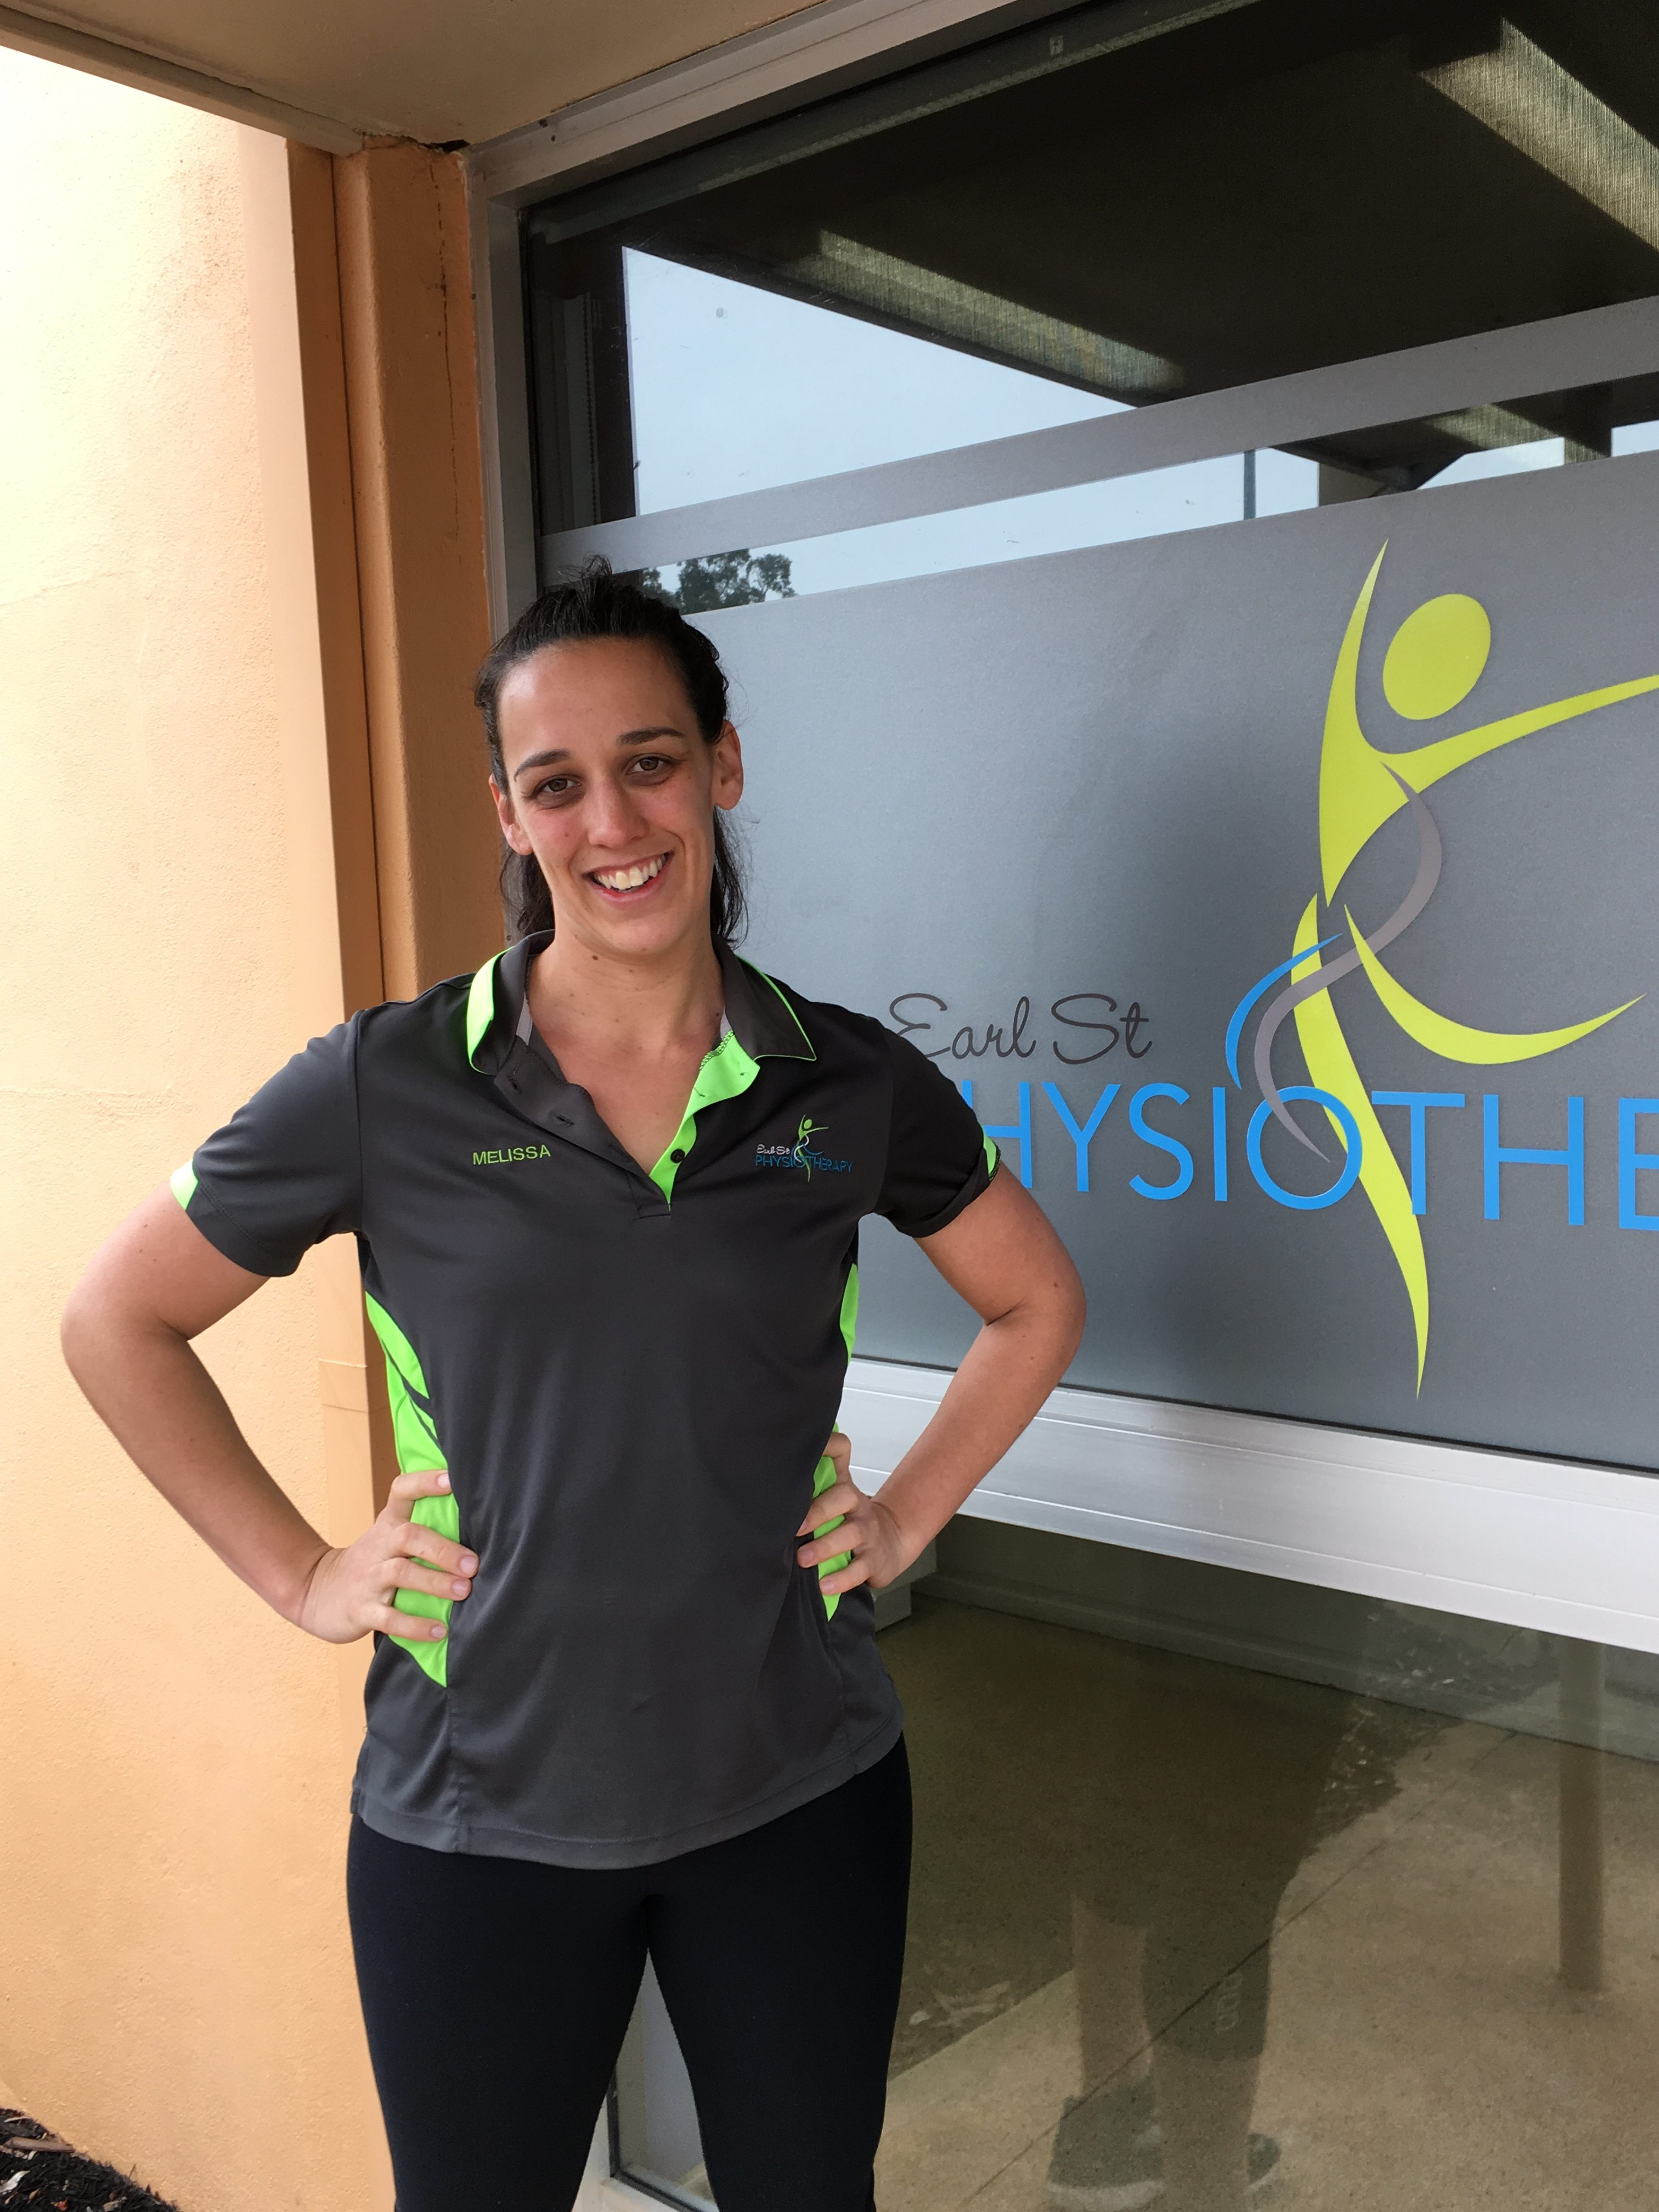 Melissa Tinker, Earl St Physiotherapy